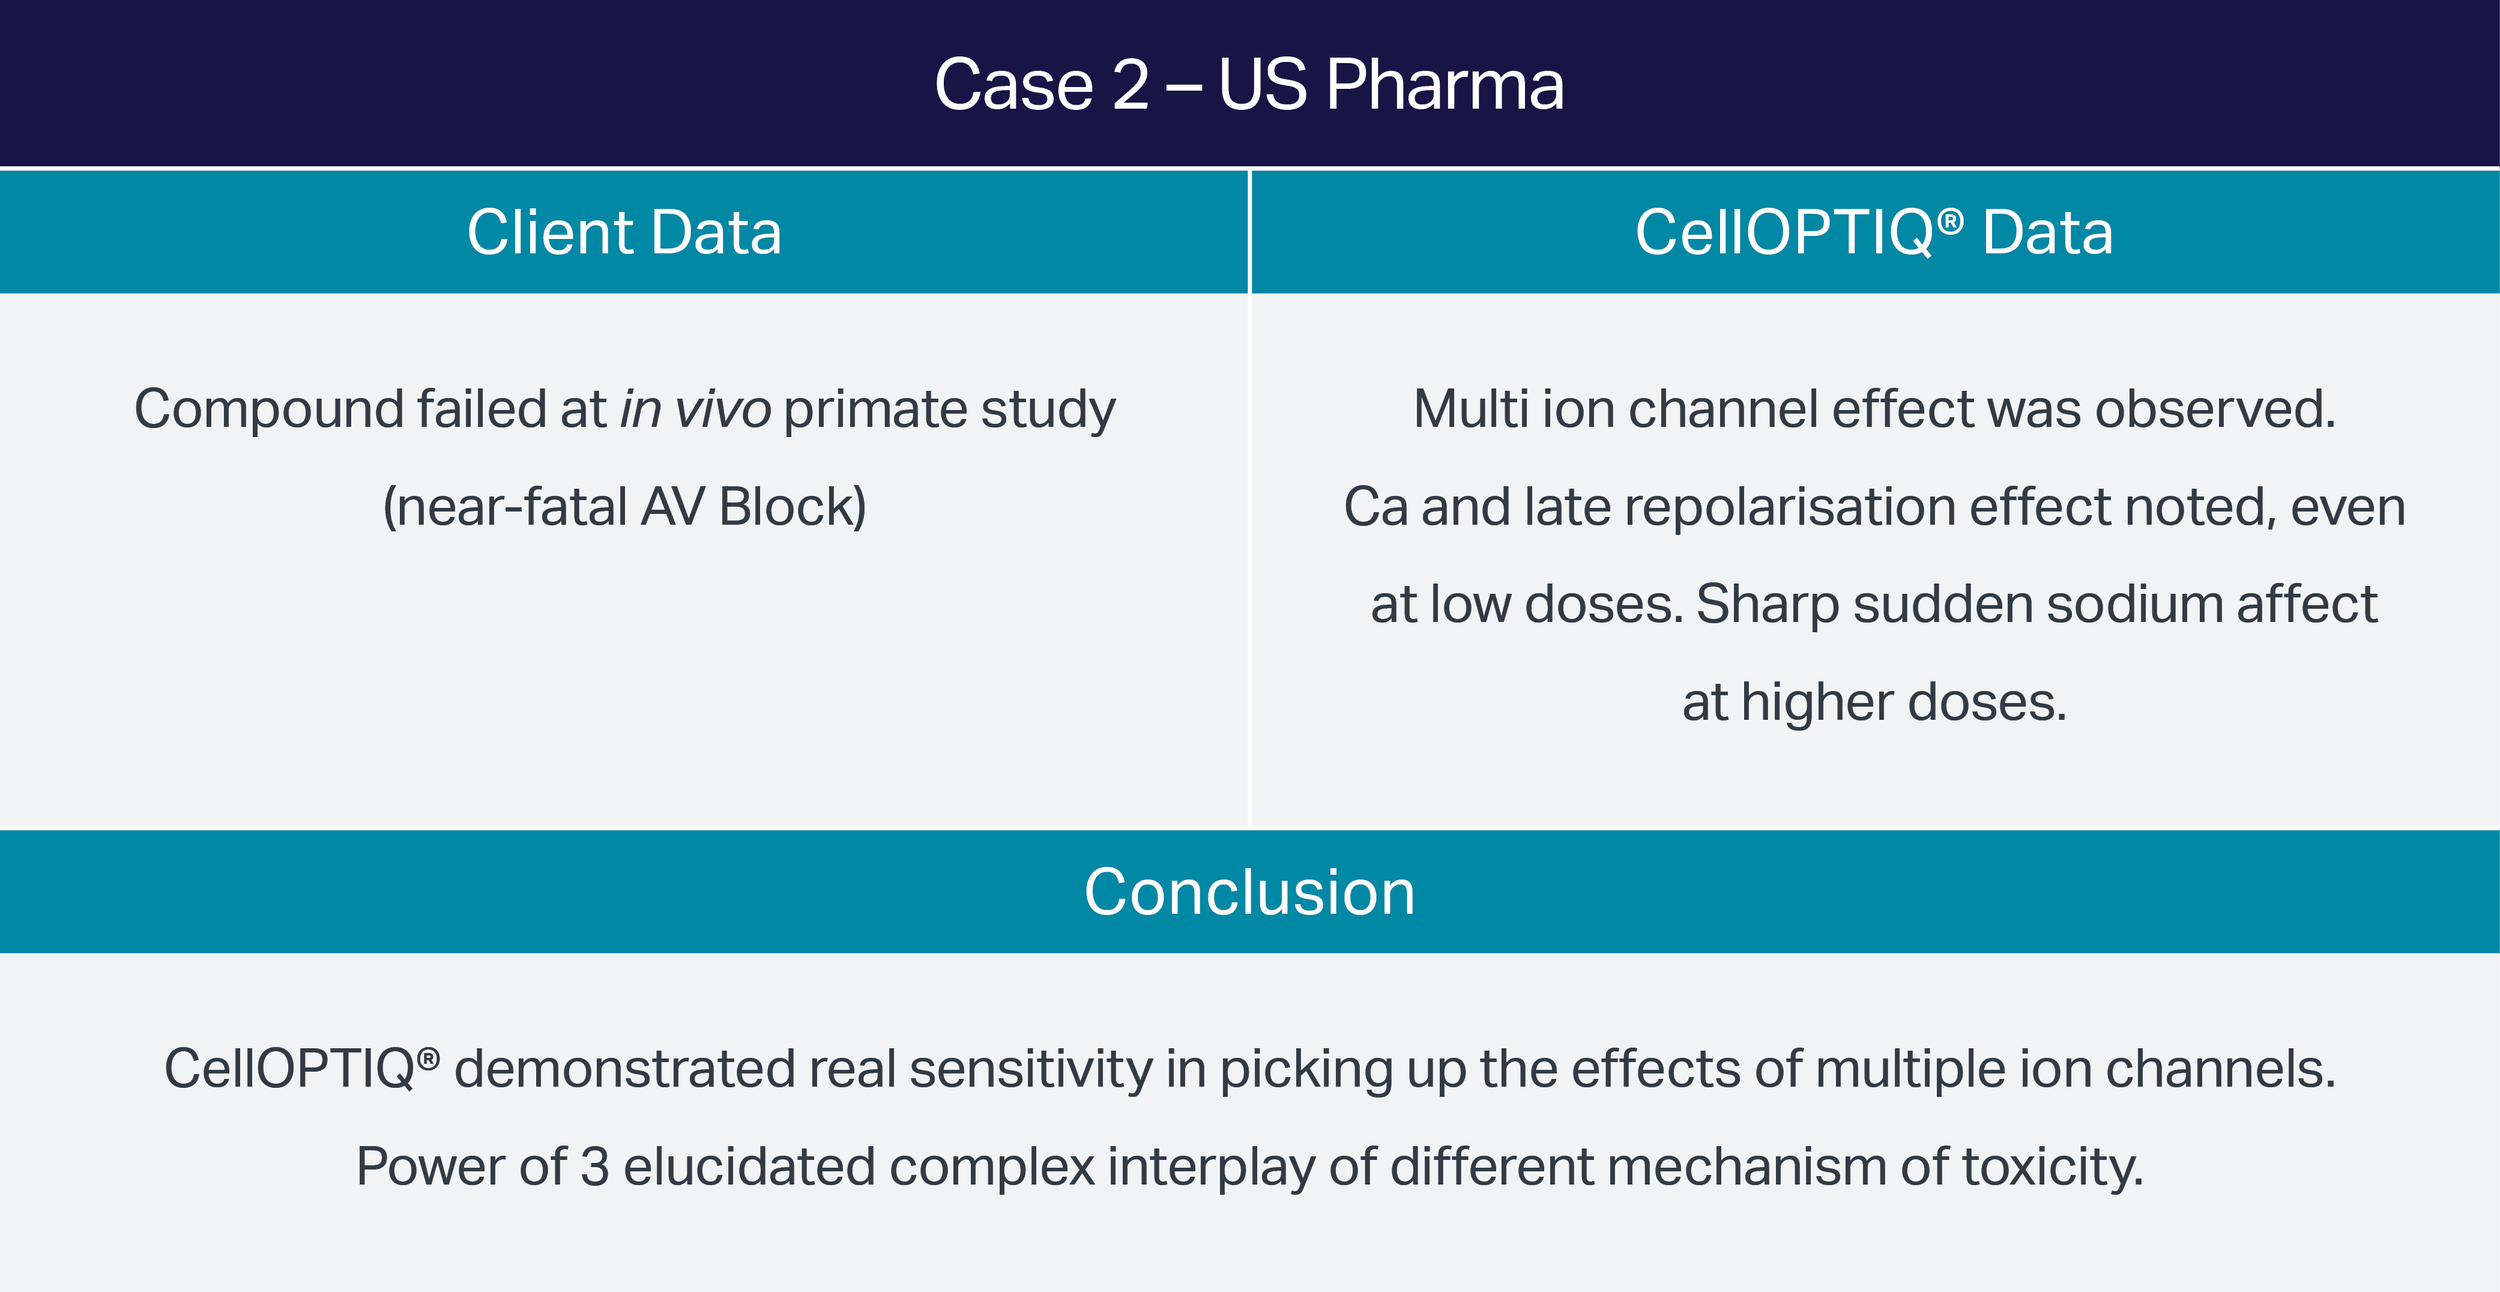 Case-2-US-Pharma-Assay-Comparison.png